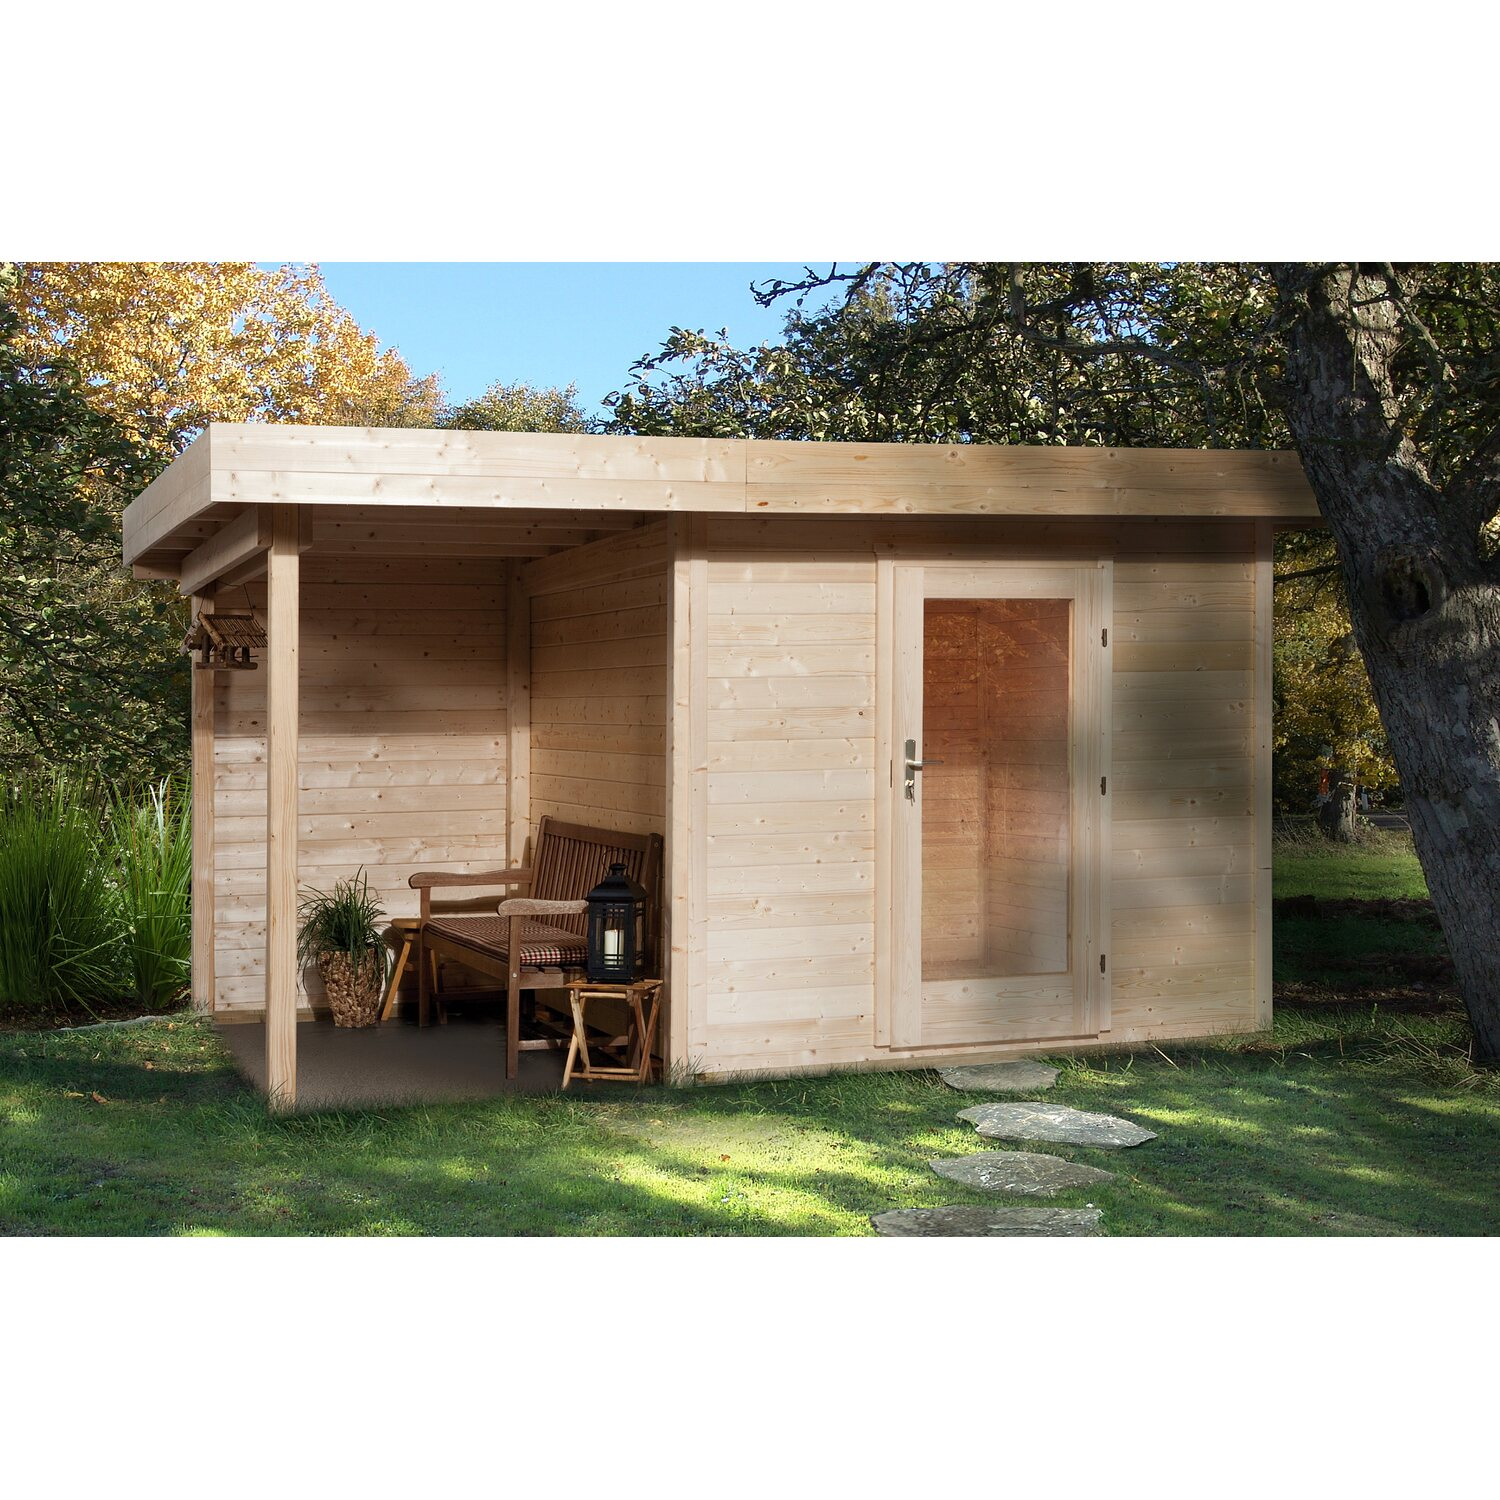 obi holz gartenhaus florenz b gr e 2 natur bxt 385 x 240 cm davon 150 cm terr kaufen bei obi. Black Bedroom Furniture Sets. Home Design Ideas